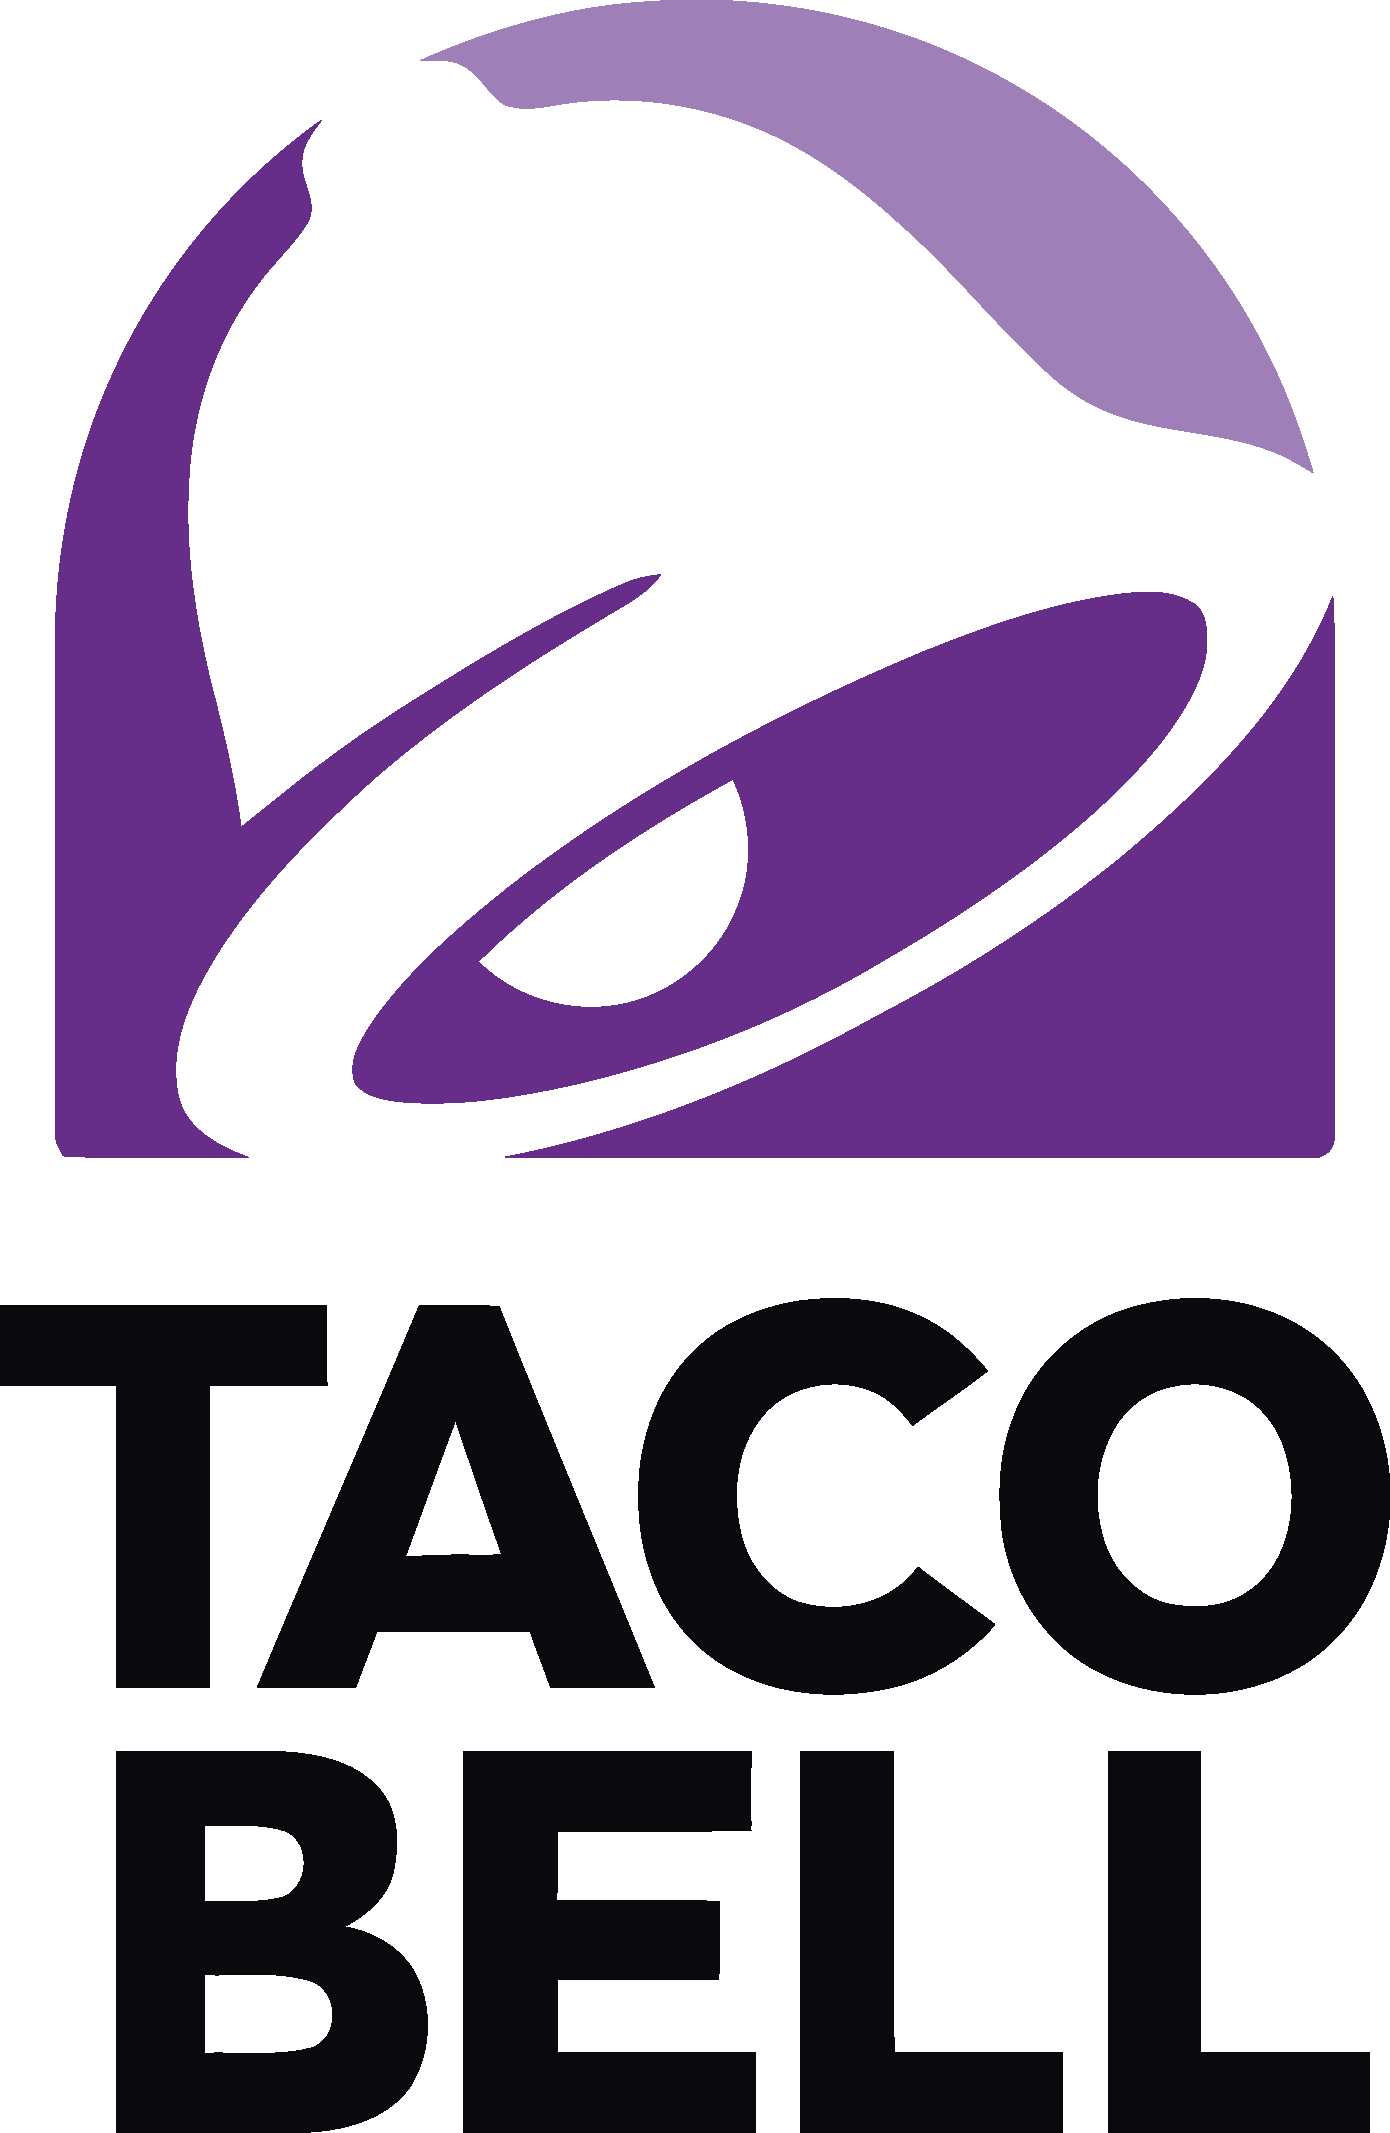 Tacobell clipart png freeuse stock Taco Bell Logo [PDF] Vector Icon Template Clipart Free Download png freeuse stock